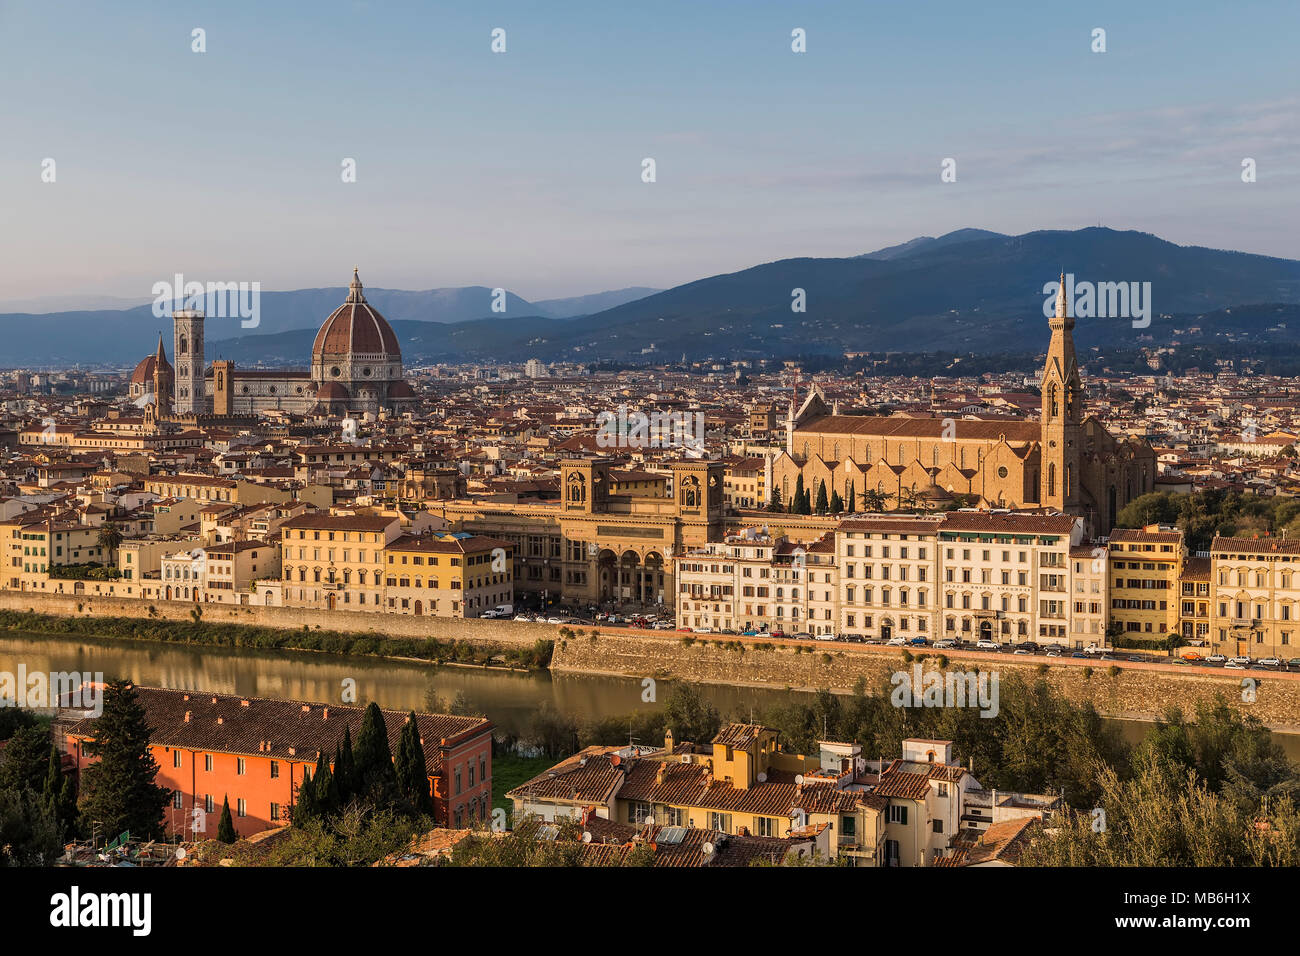 View of the Arno River, the Basilica of Santa - Croce and Santa - Maria - Del - Fiore in Florence. Italy. - Stock Image